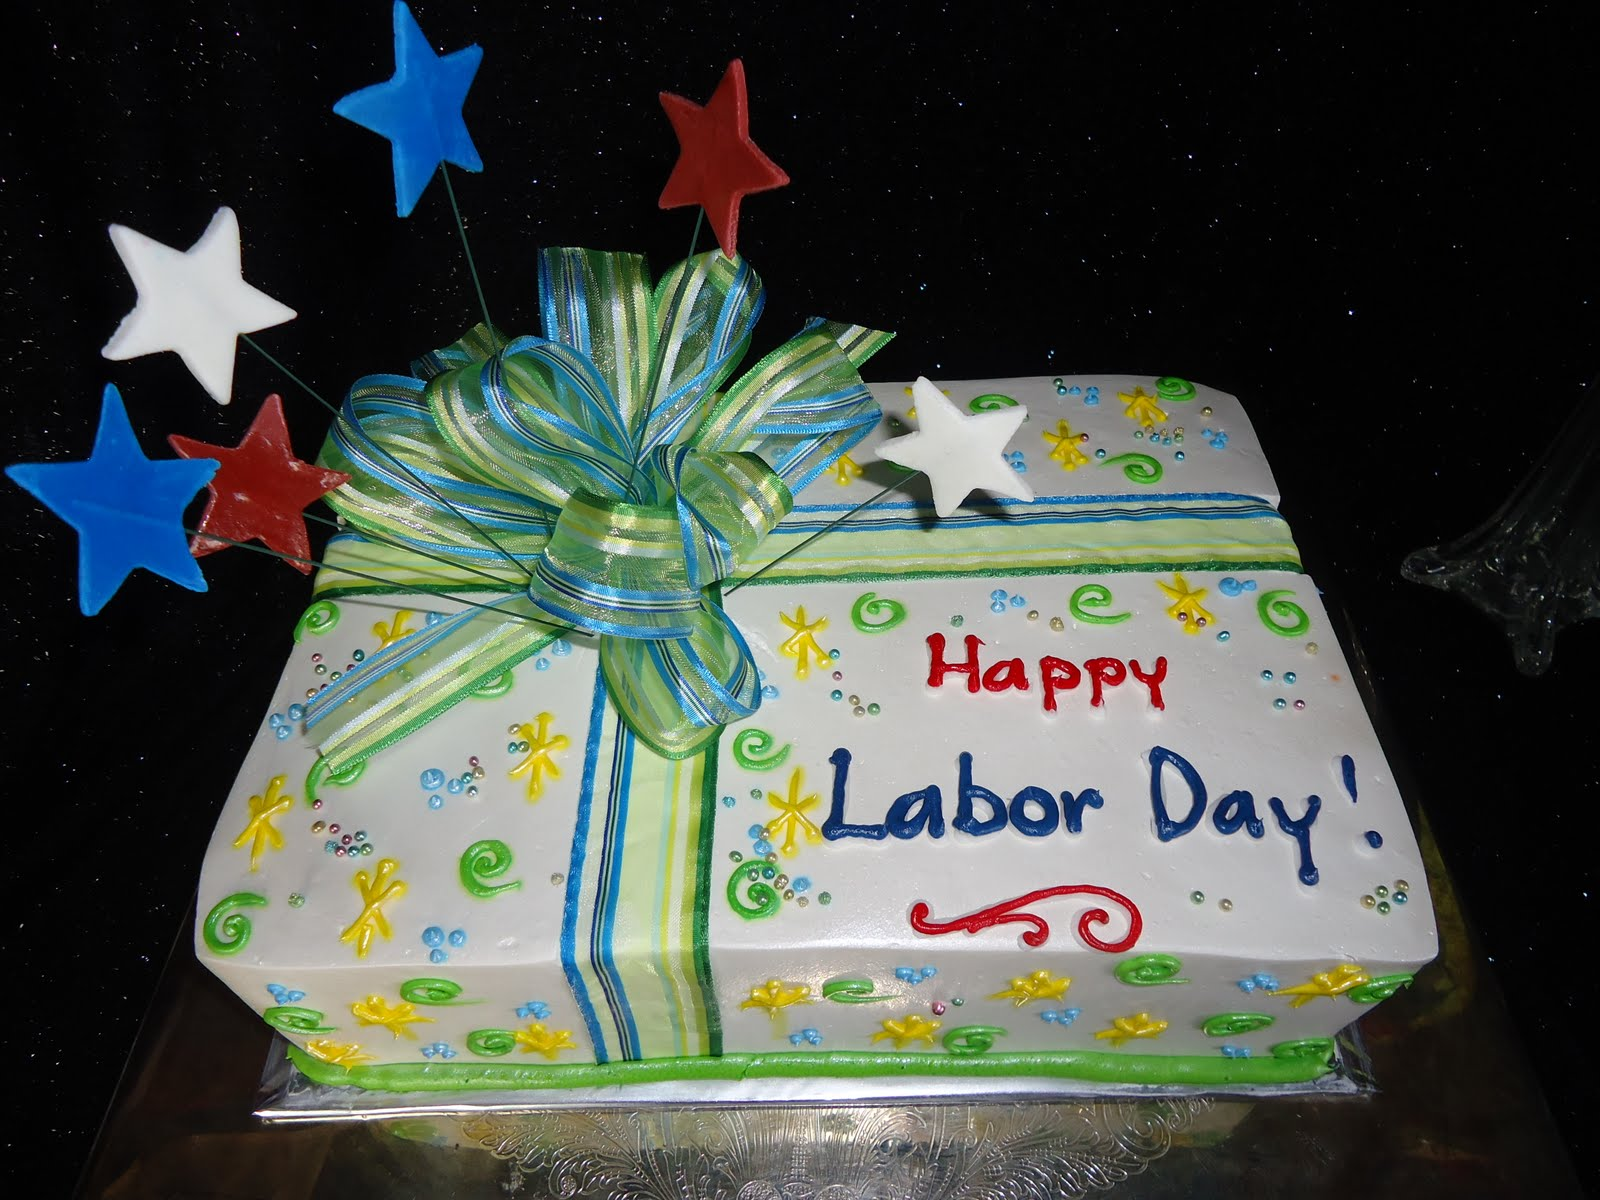 Cake Decorating Ideas For Labor Day : Labor Day Cake Ideas Images 1809 Bamboo Bakery 602 246 806